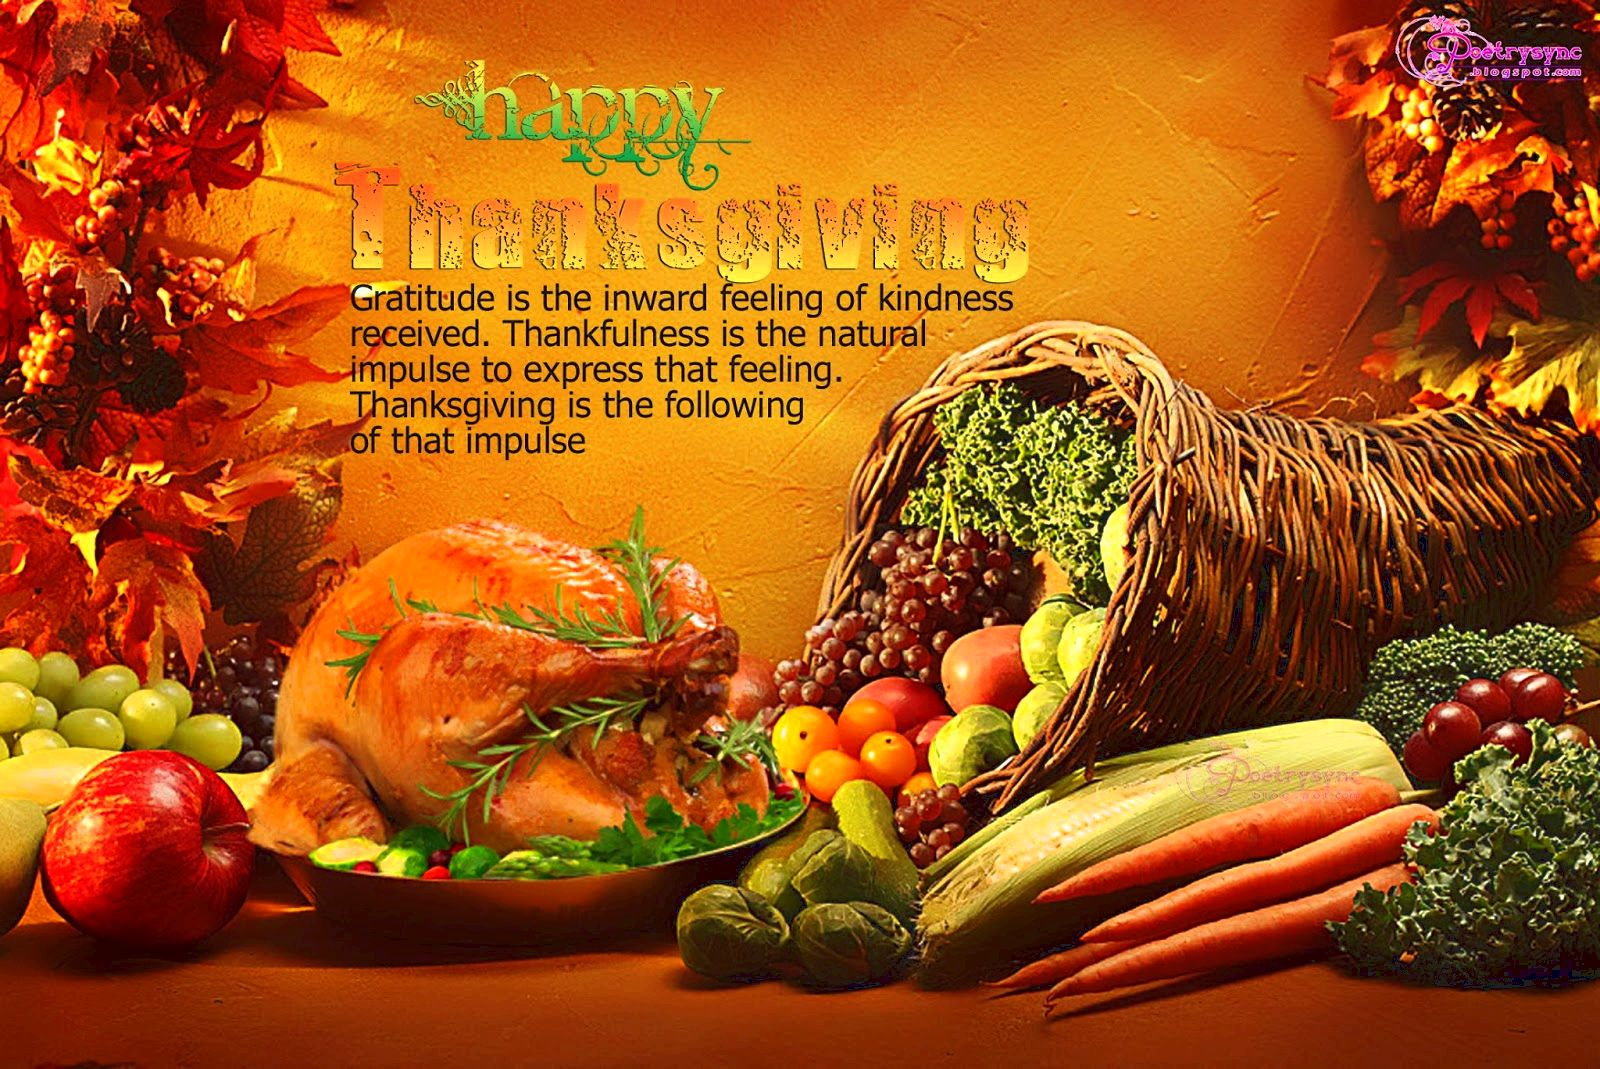 Happy thanksgiving day 2016 clip arts download free images, wallpapers gratitude poems, thanksgiving gratitude quotes